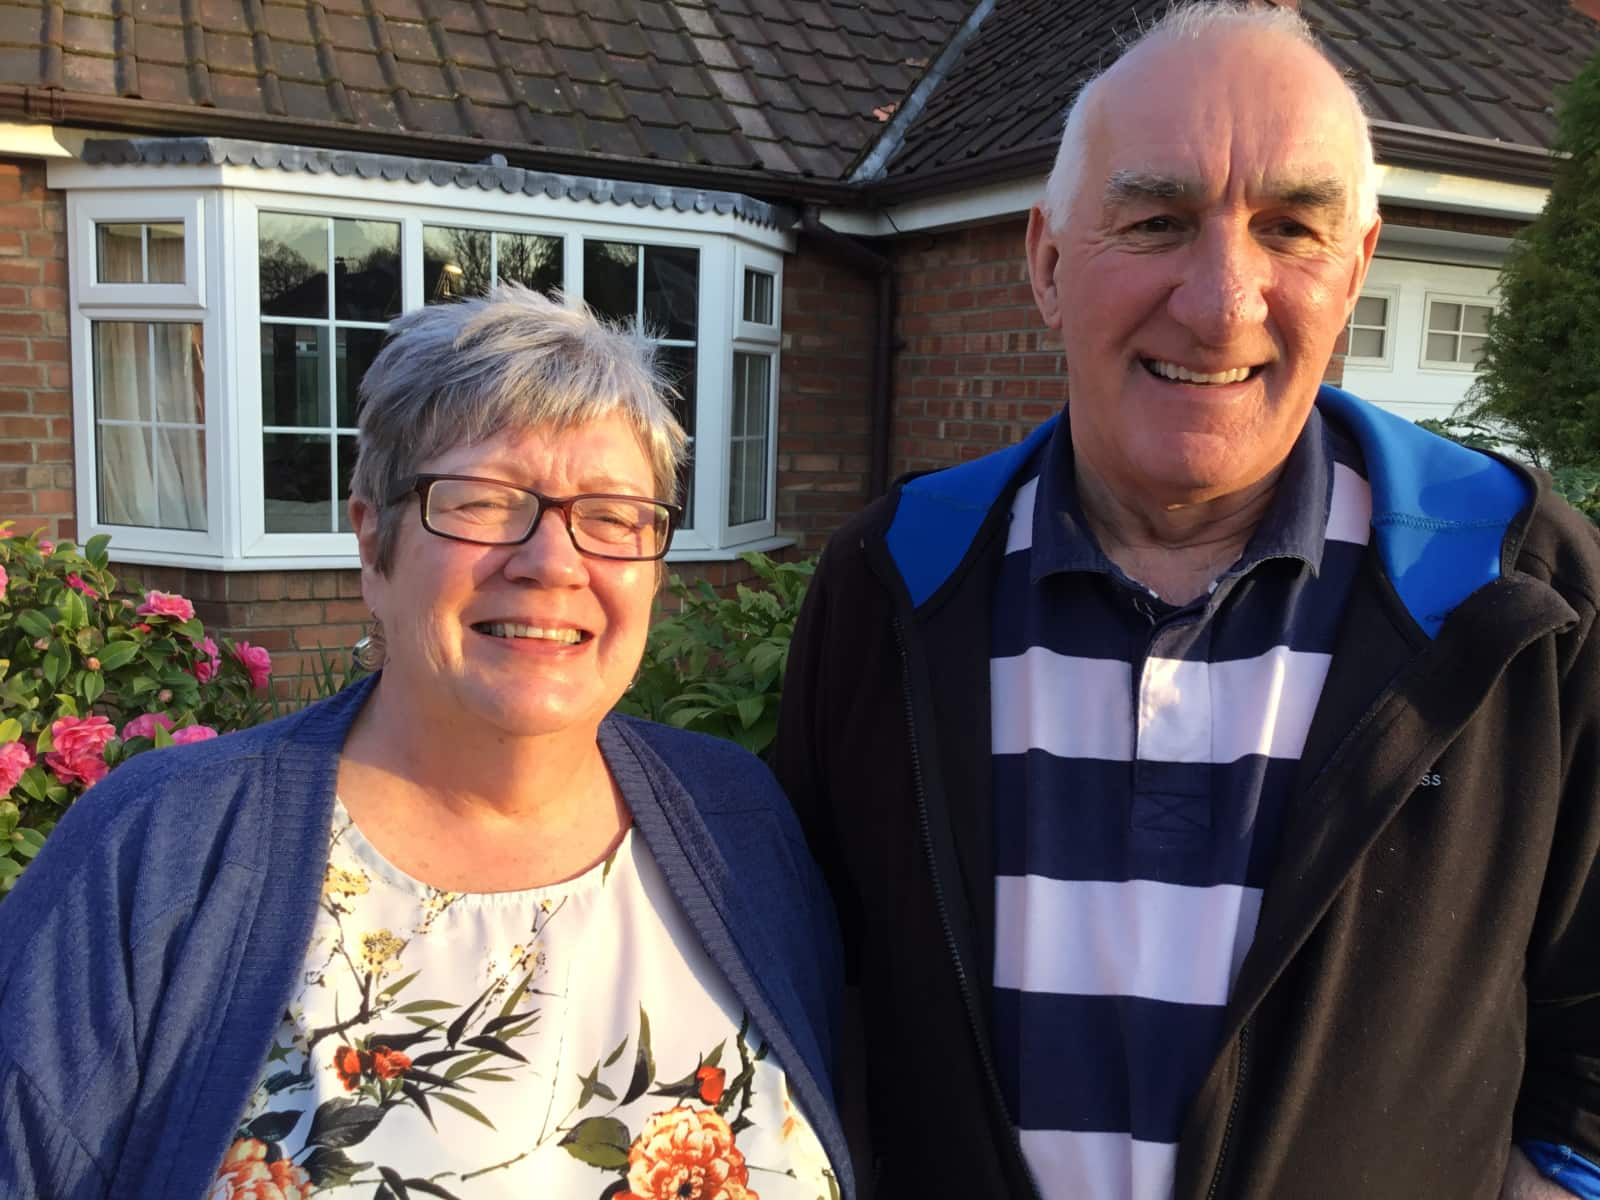 Peter & Kathy from York, United Kingdom